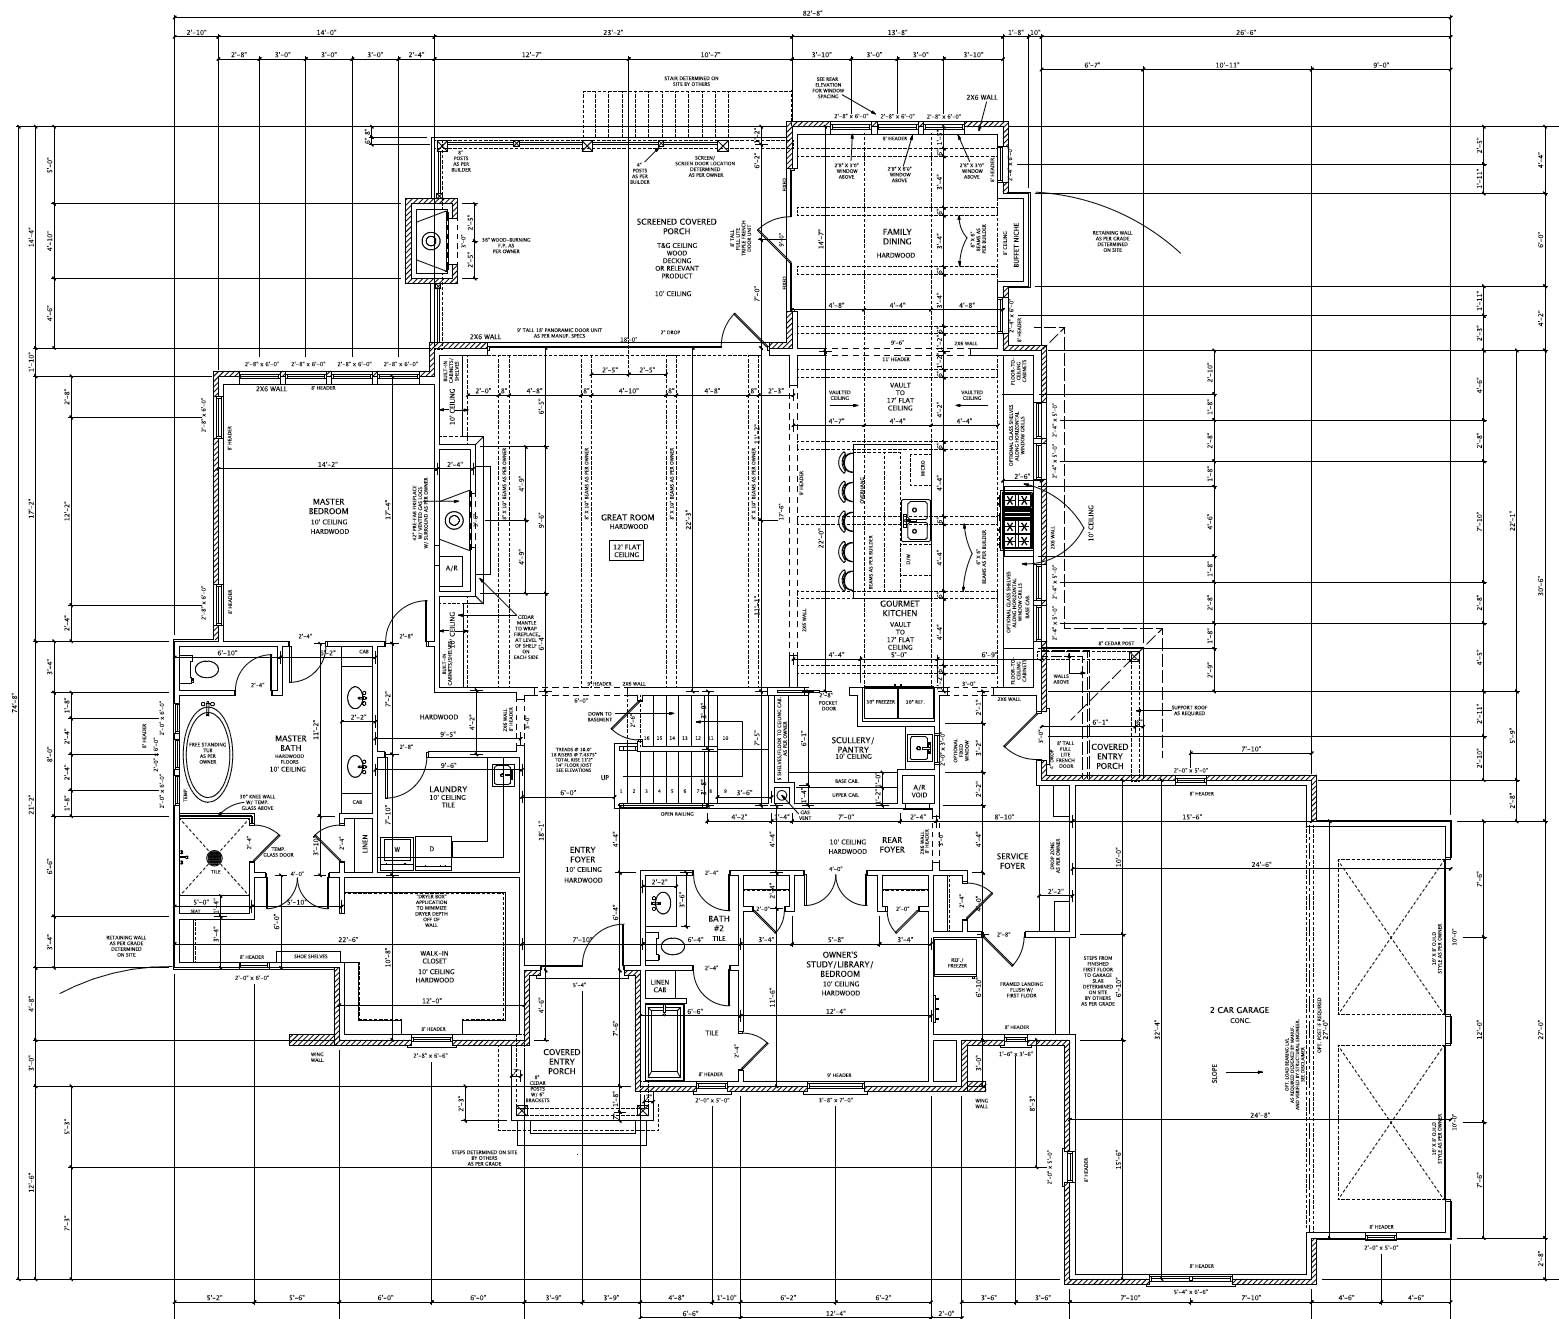 Designing a Functional House: The Thought Process Behind Our ...